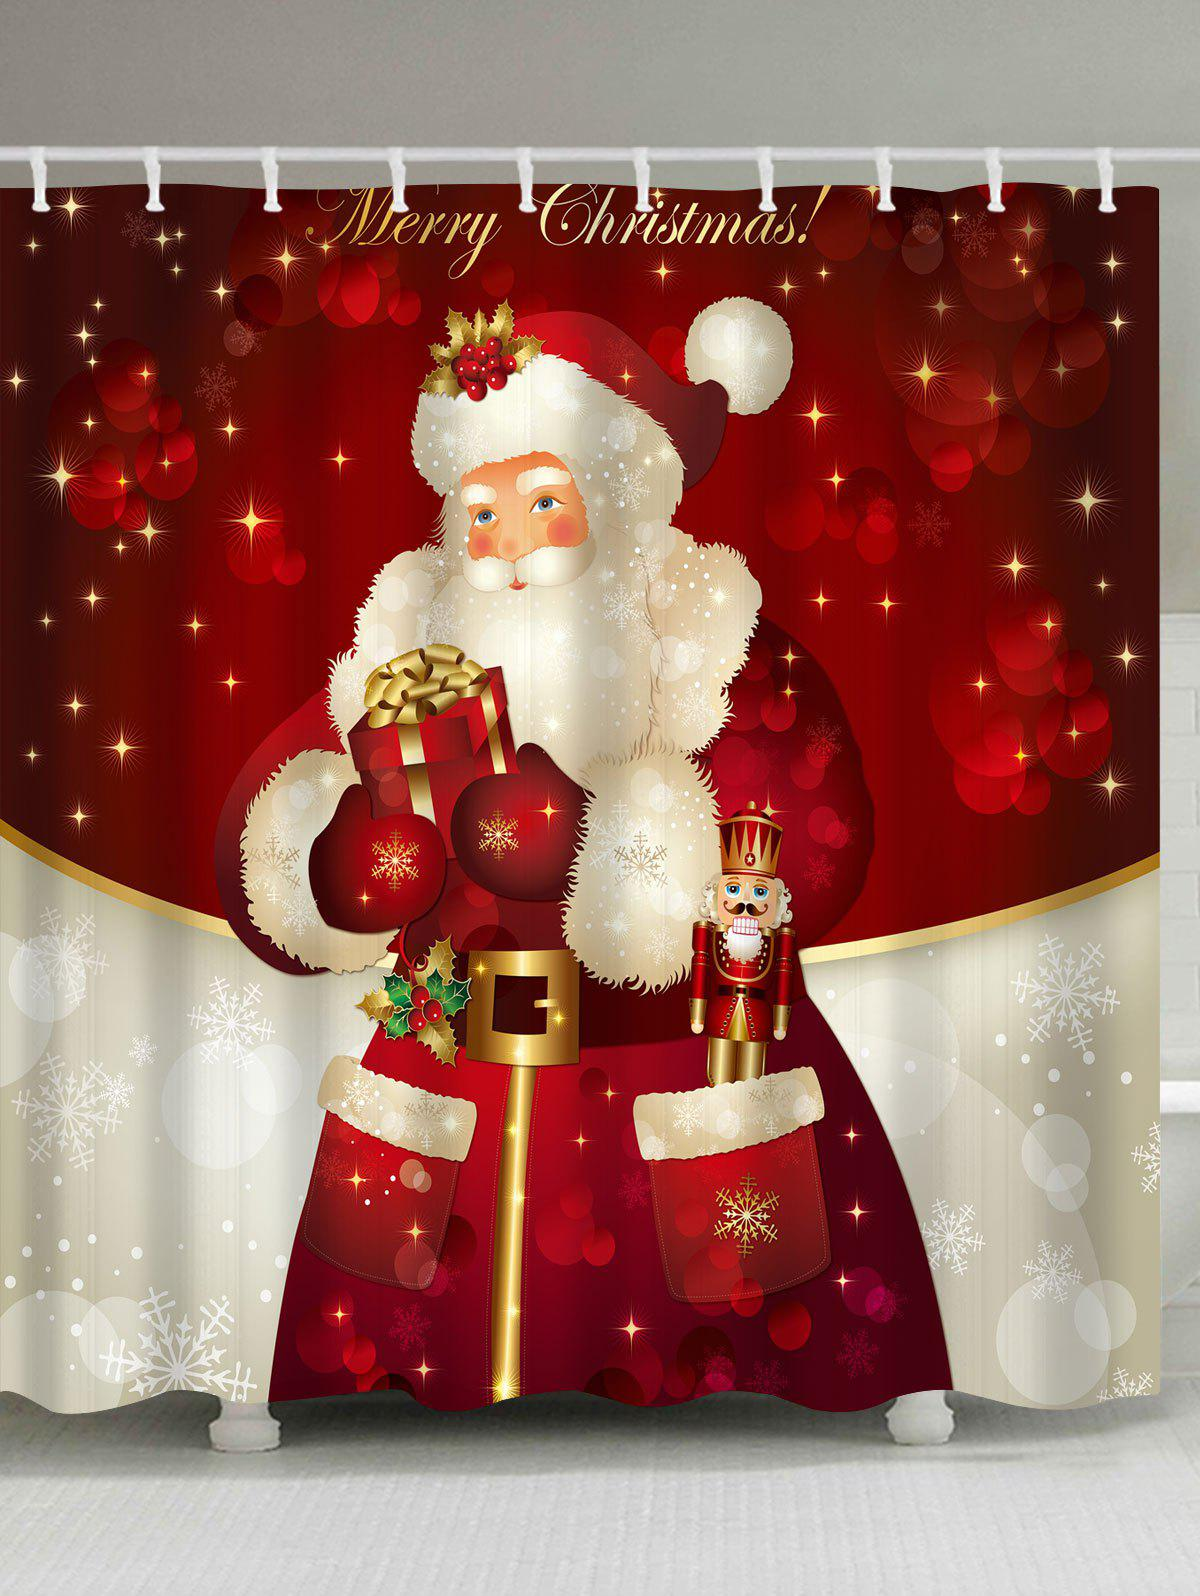 Christmas Santa Claus Waterproof Shower Curtain Barhroom DecorHOME<br><br>Size: W59 INCH * L71 INCH; Color: RED; Products Type: Shower Curtains; Materials: Polyester; Pattern: Santa Claus; Style: Festival; Number of Hook Holes: W59 inch*L71 inch: 10; W71 inch*L71 inch: 12; W71 inch*L79 inch: 12; Package Contents: 1 x Shower Curtain 1 x Hooks (Set);